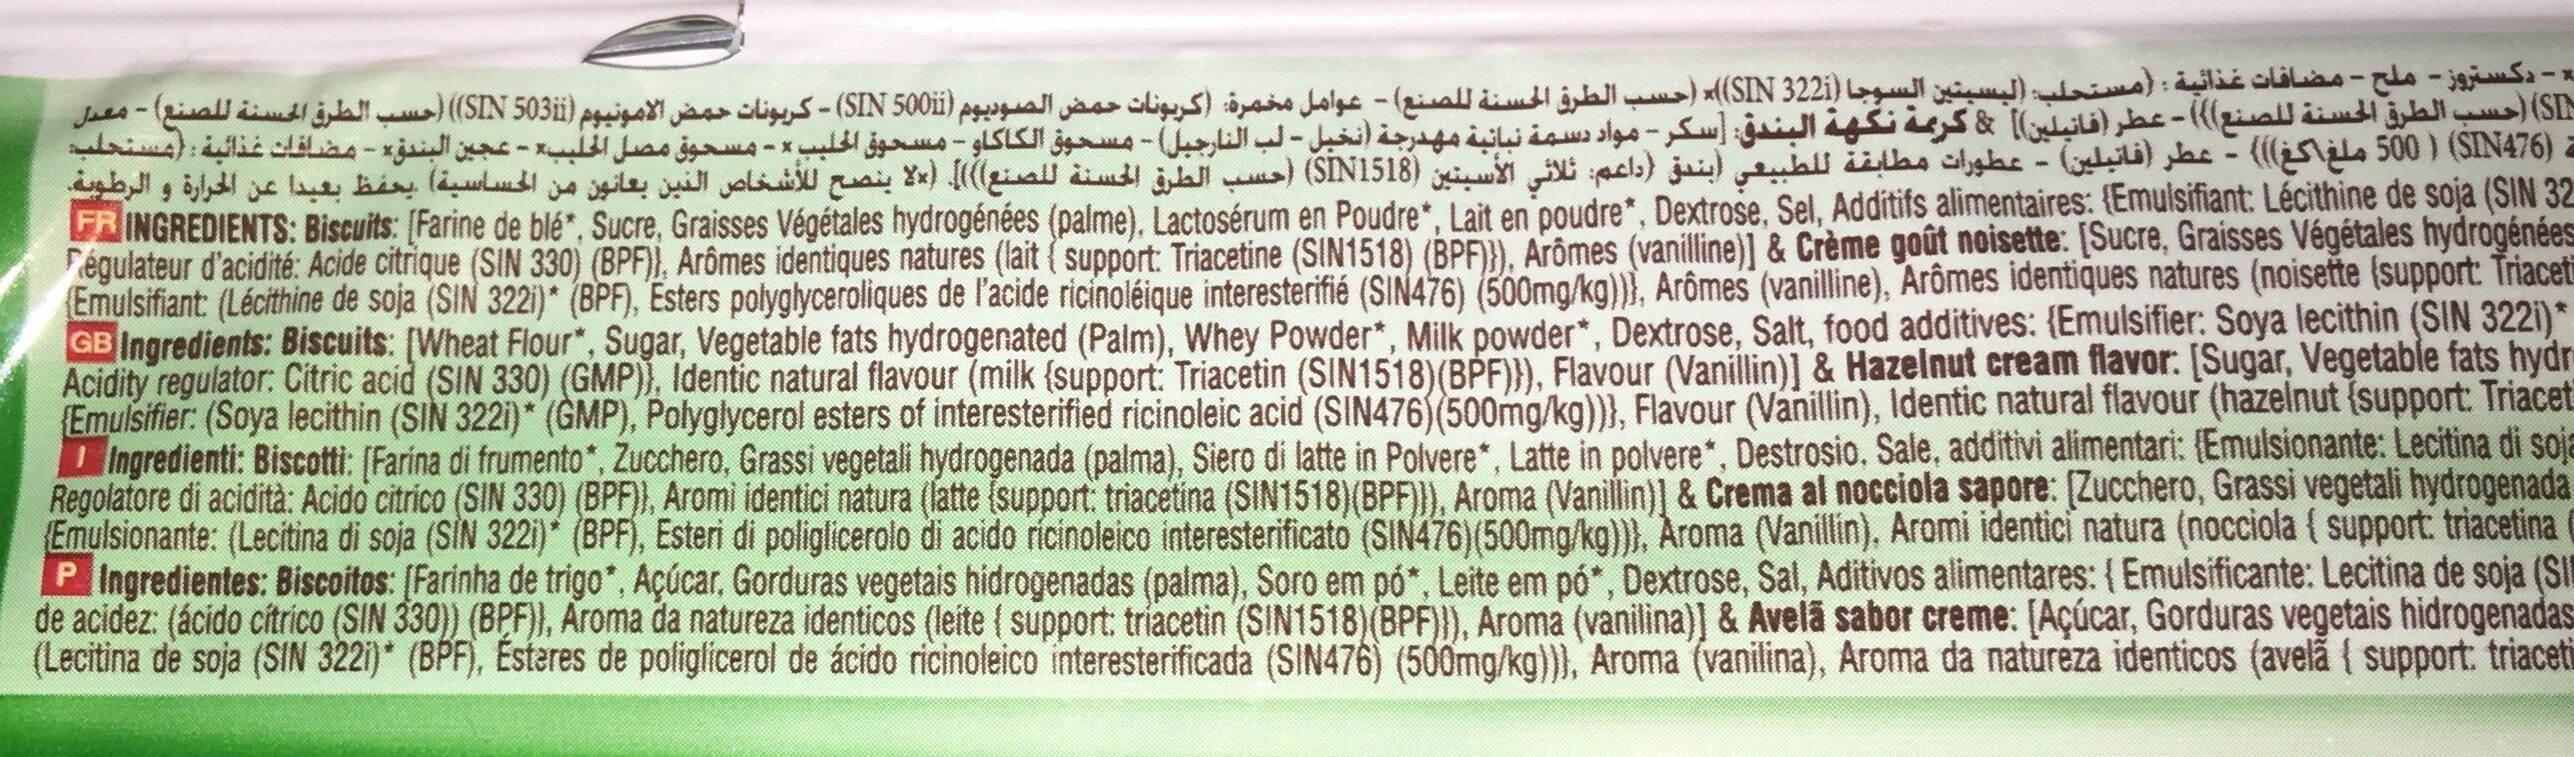 Biscuits Tigato Noisettes Kif (125G) - Ingredients